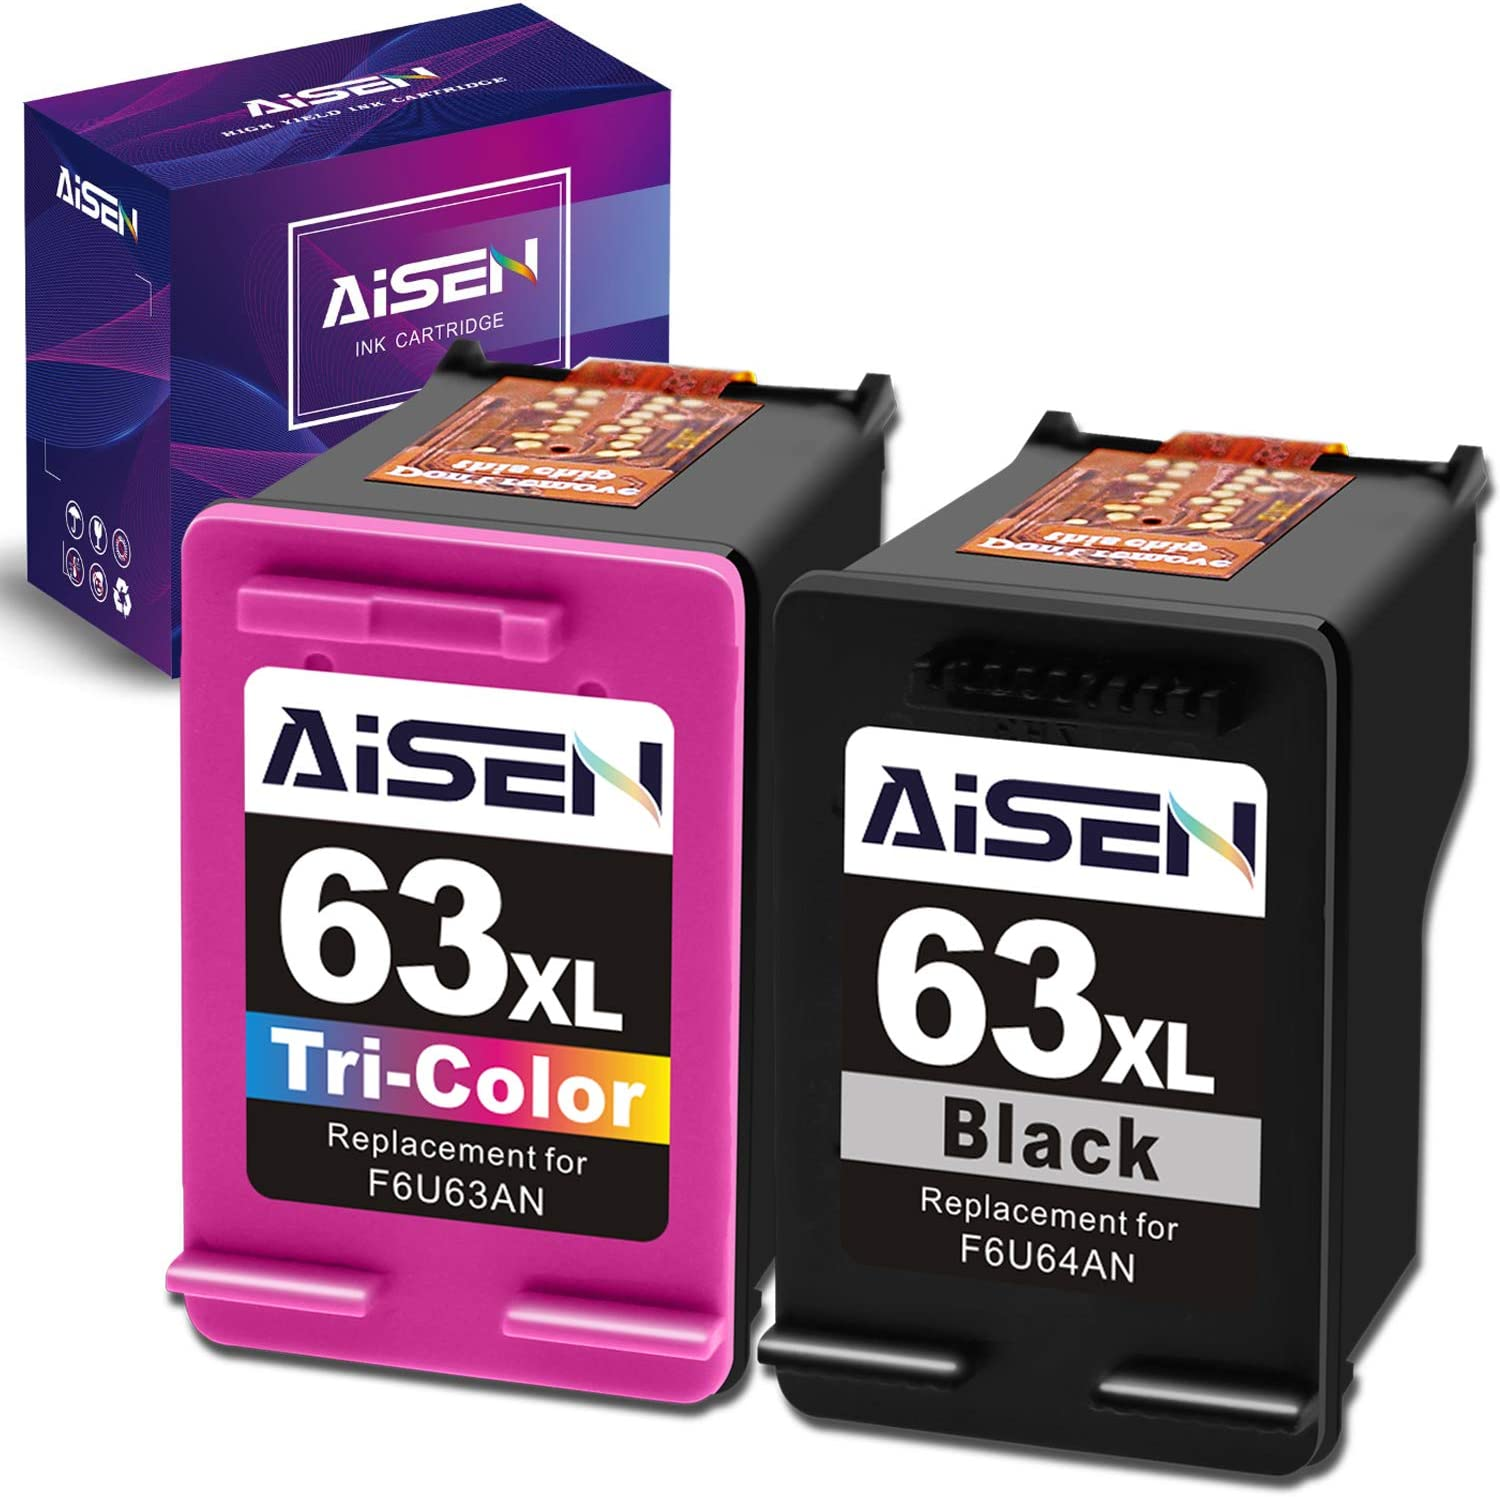 AISEN Remanufactured Ink Cartridge 63 Replacement for HP 63XL 63 XL Used in Officejet 3830 5255 5258 4650 5230 Envy 4520 4512 4513 DeskJet 1112 1110 3630 3632 2130 2132 (1 Black 1 Tri-Color)